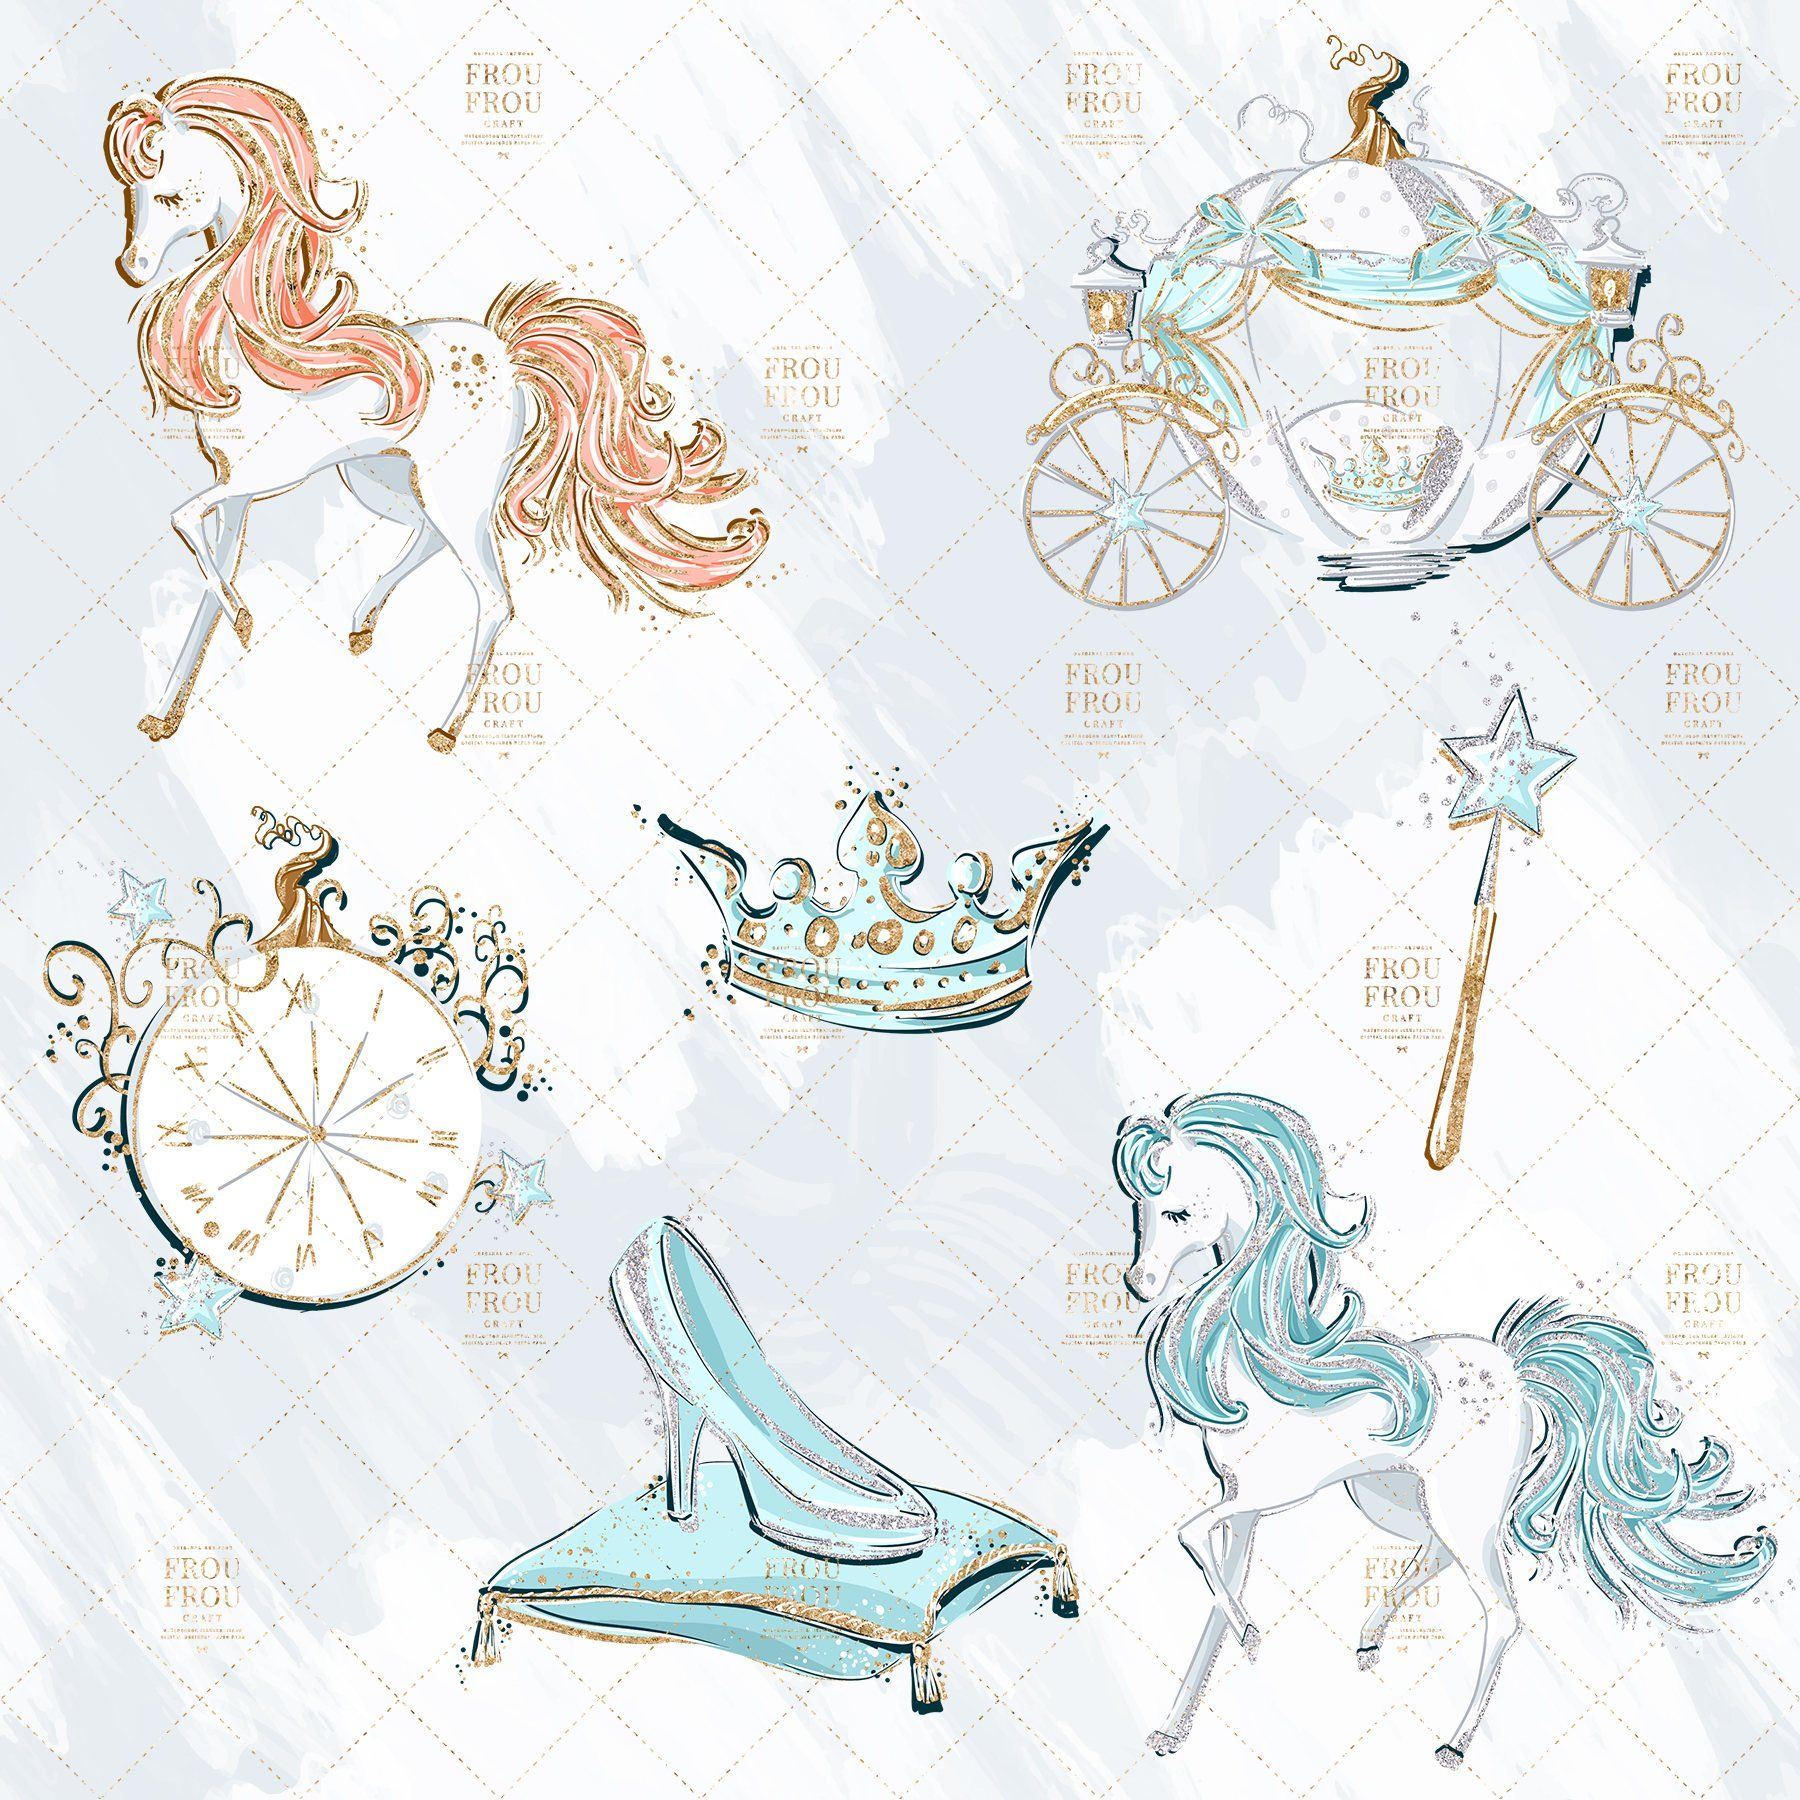 hight resolution of fairy tale clipart etsy princess logo princess style cinderella pumpkin pumpkin carriage